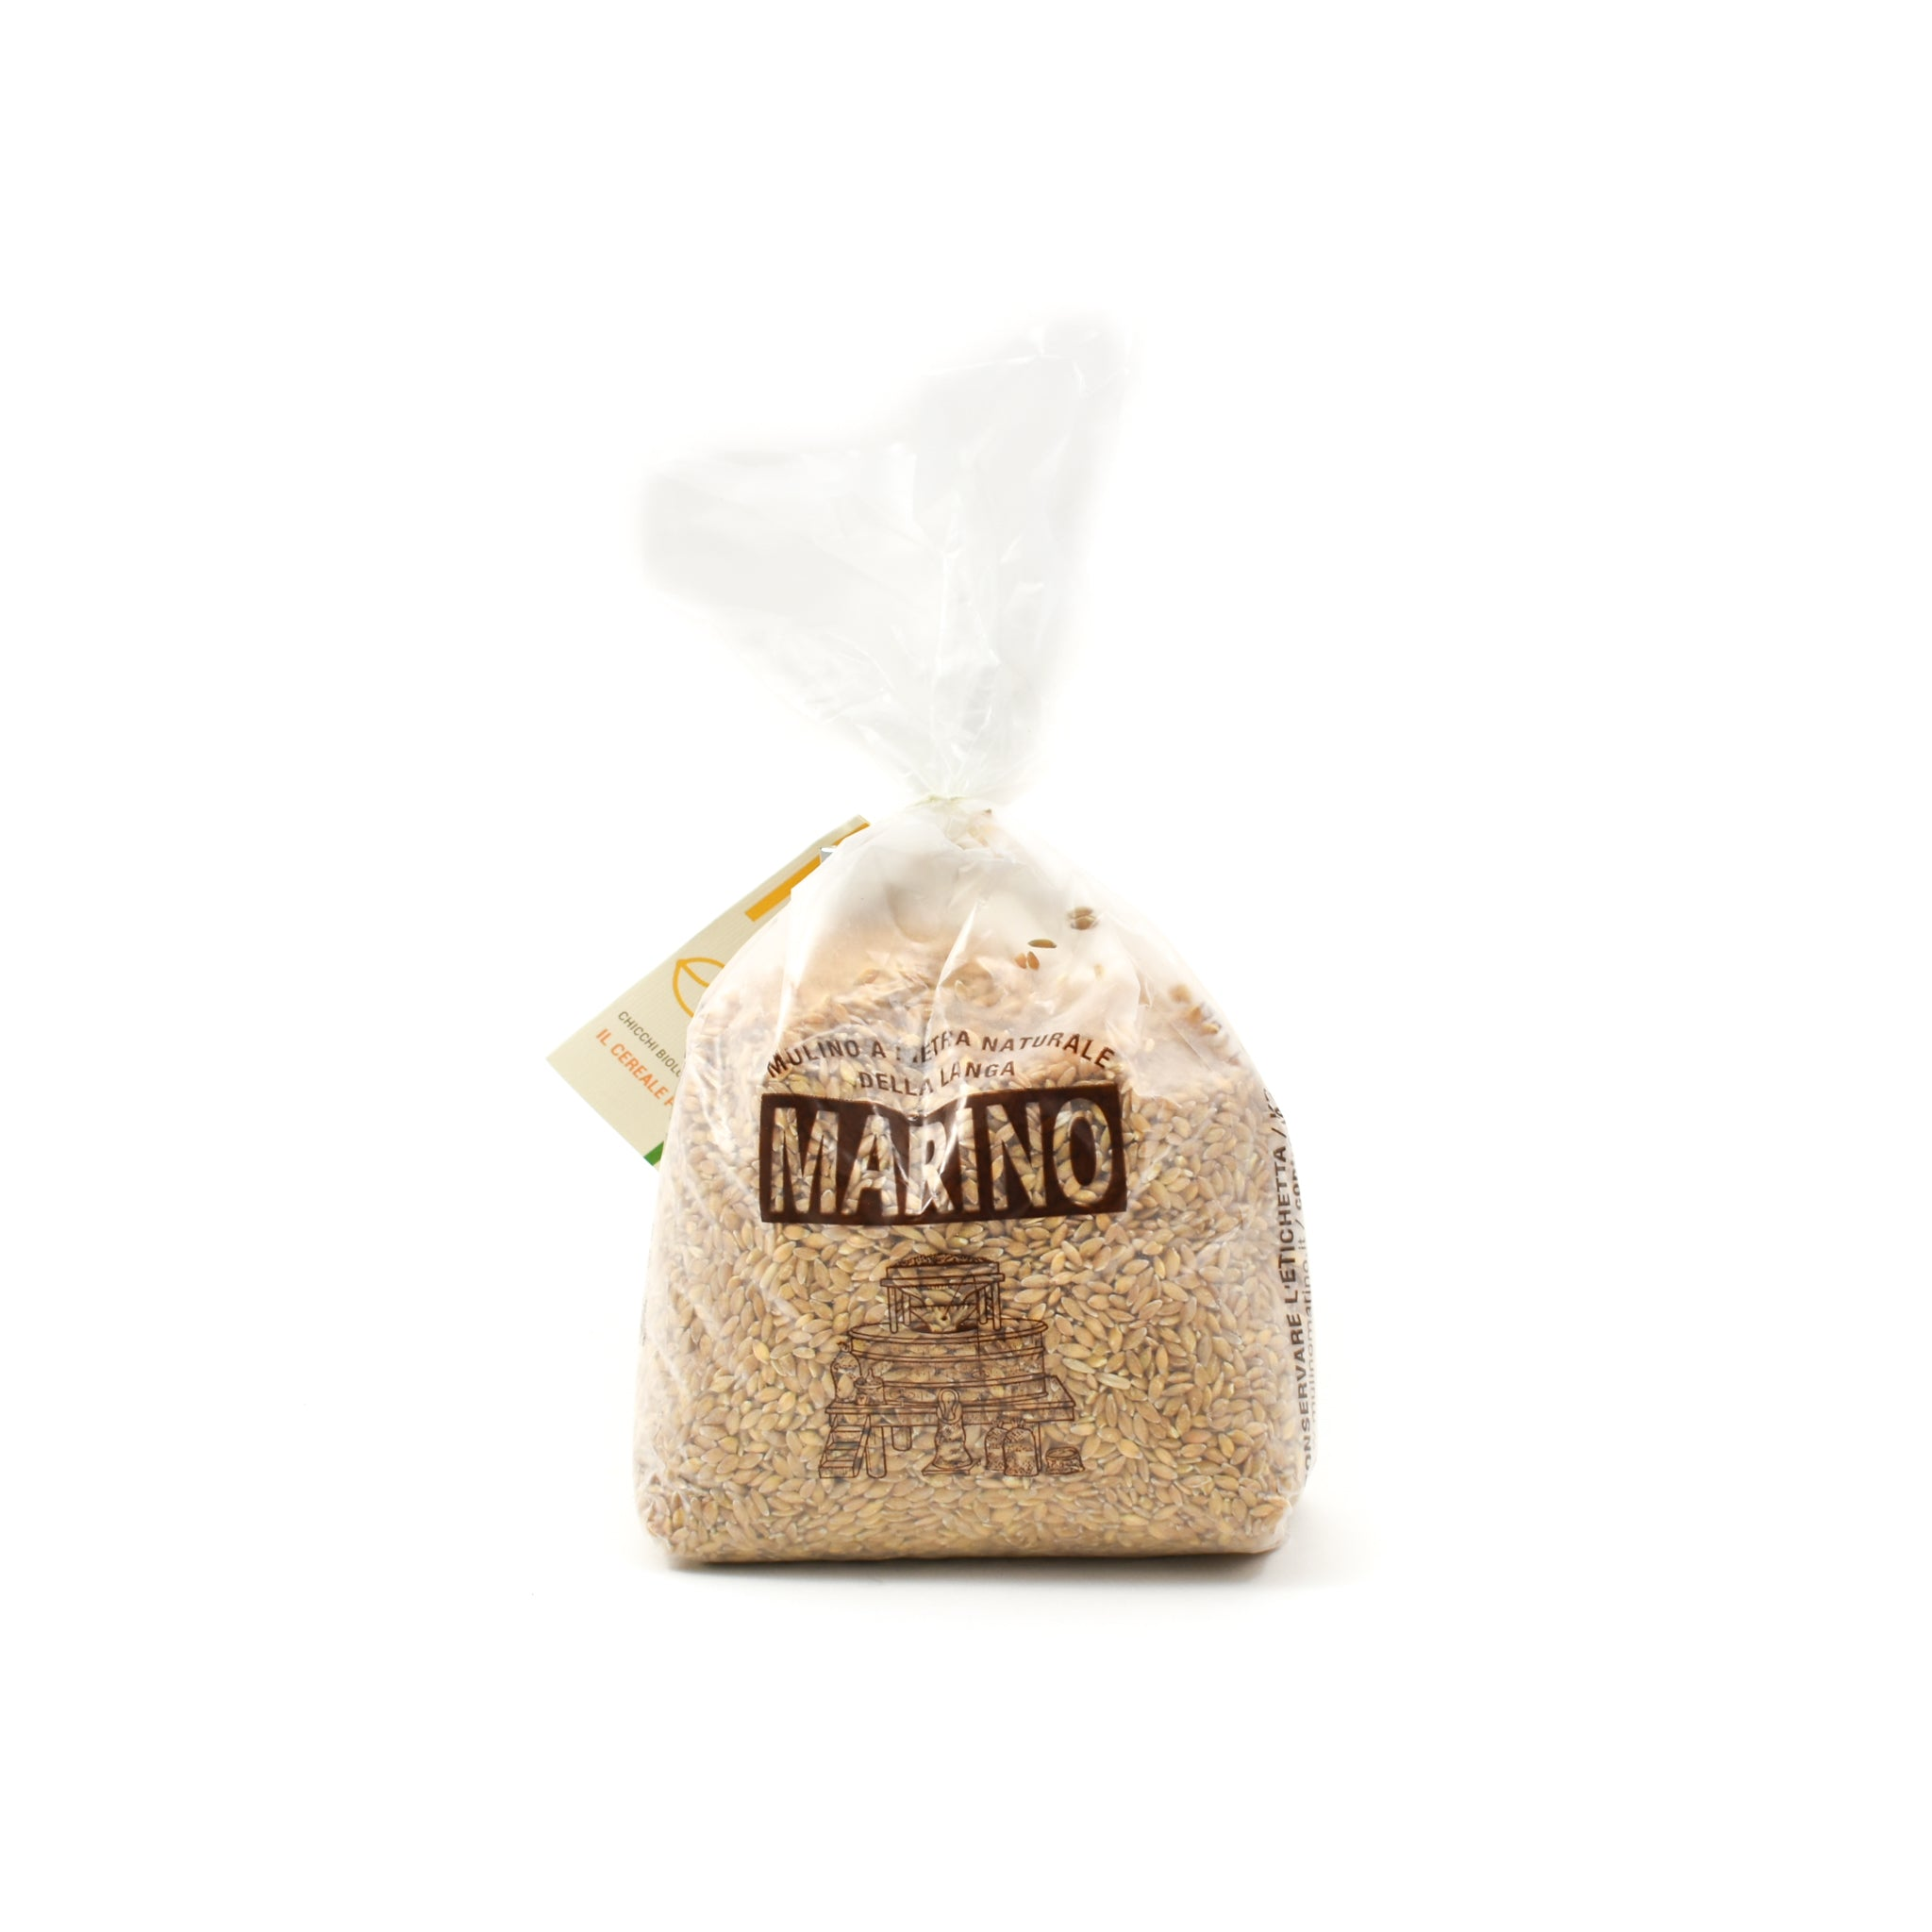 Mulino Marino Organic Enkir (Einkorn) Spelt Grain 1kg Ingredients Flour Grains & Seeds Italian Food